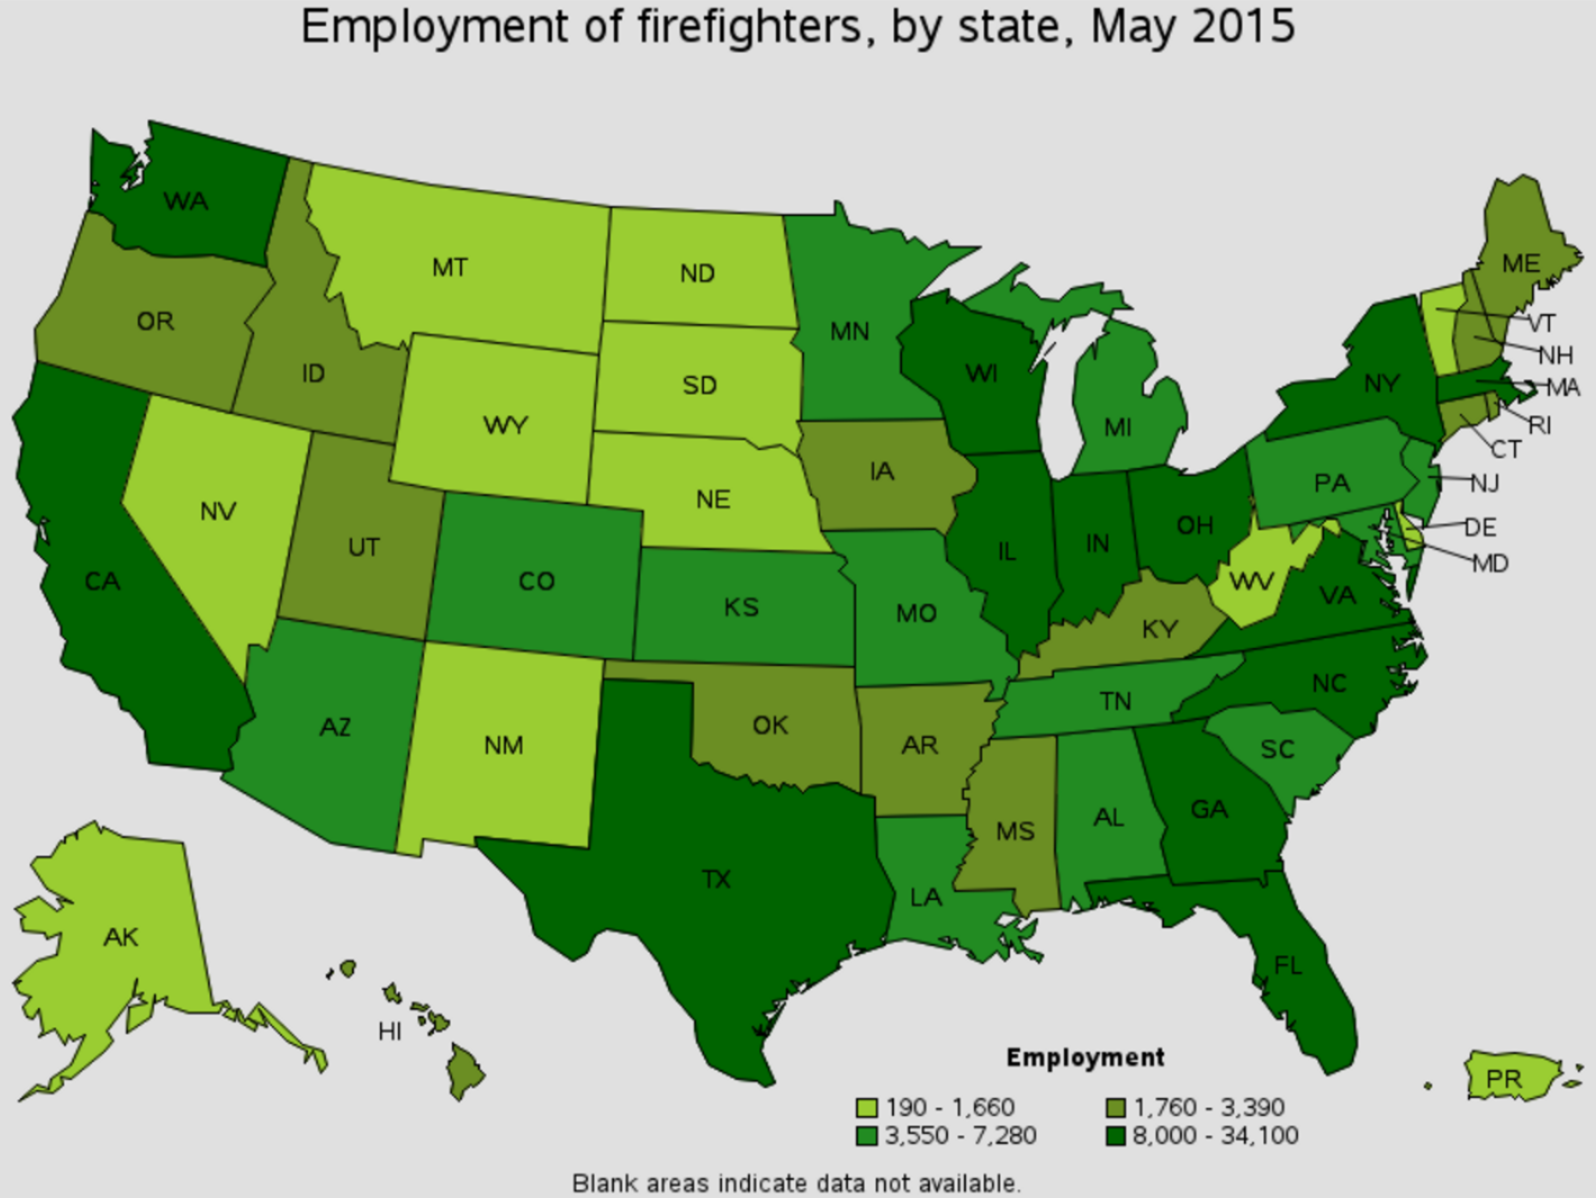 firefighter job outlook by state Wood River Junction Rhode Island